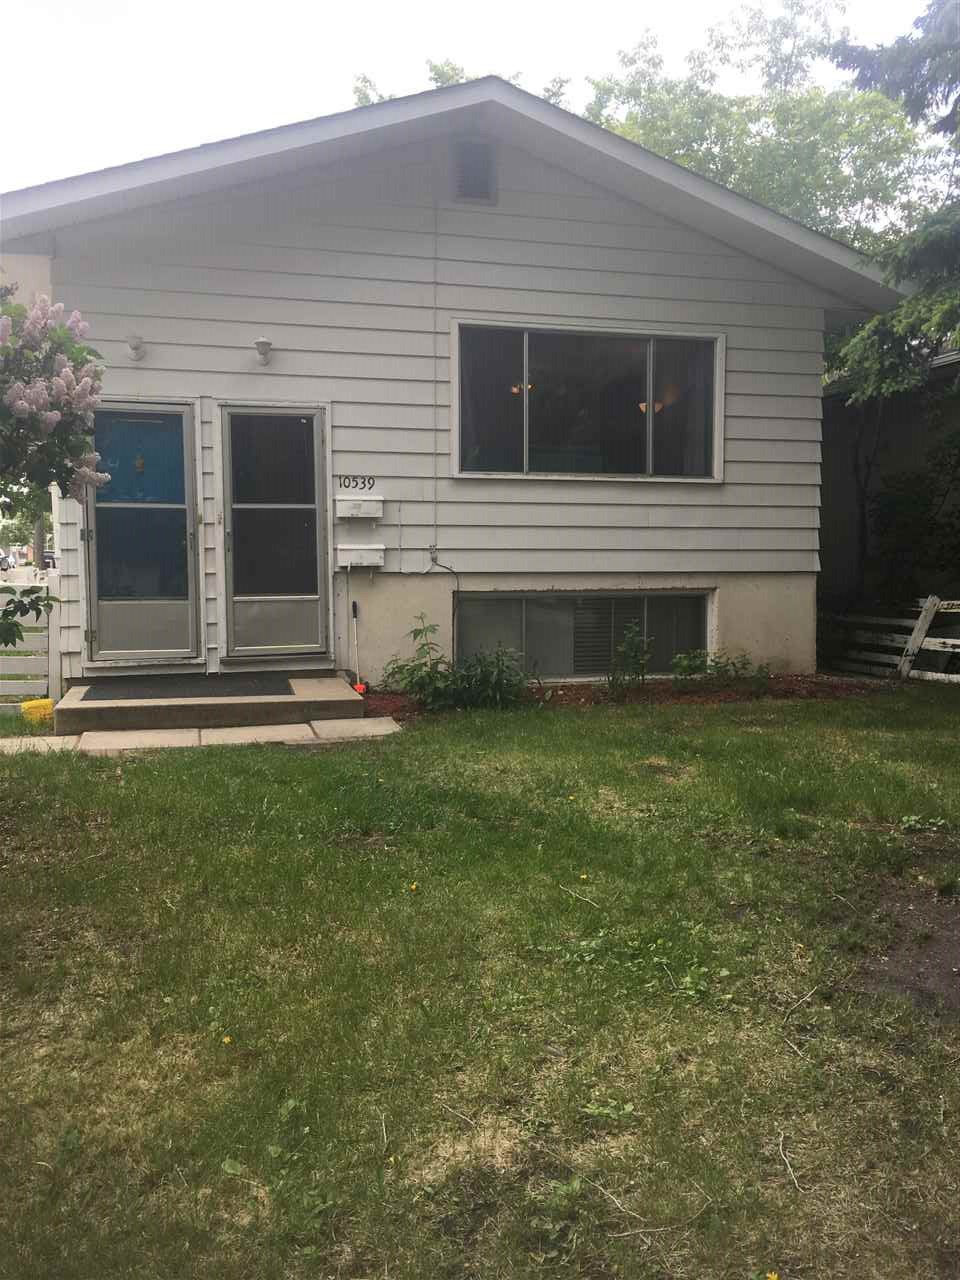 Forest Heights Bi Level with Legal Suite steps to the river valley, minutes to downtown located next to bus stop! Up/down duplex style house with 3 bedrooms upstairs separate laundry and furnace. 2 bedroom basement suite is totally self-contained with separate entrance, separate laundry and furnace. Both furnaces changed in 2007, shingles, 100 amp service! Large fenced yard and double detached garage. Close to all levels of schools and shopping. Great tenants.